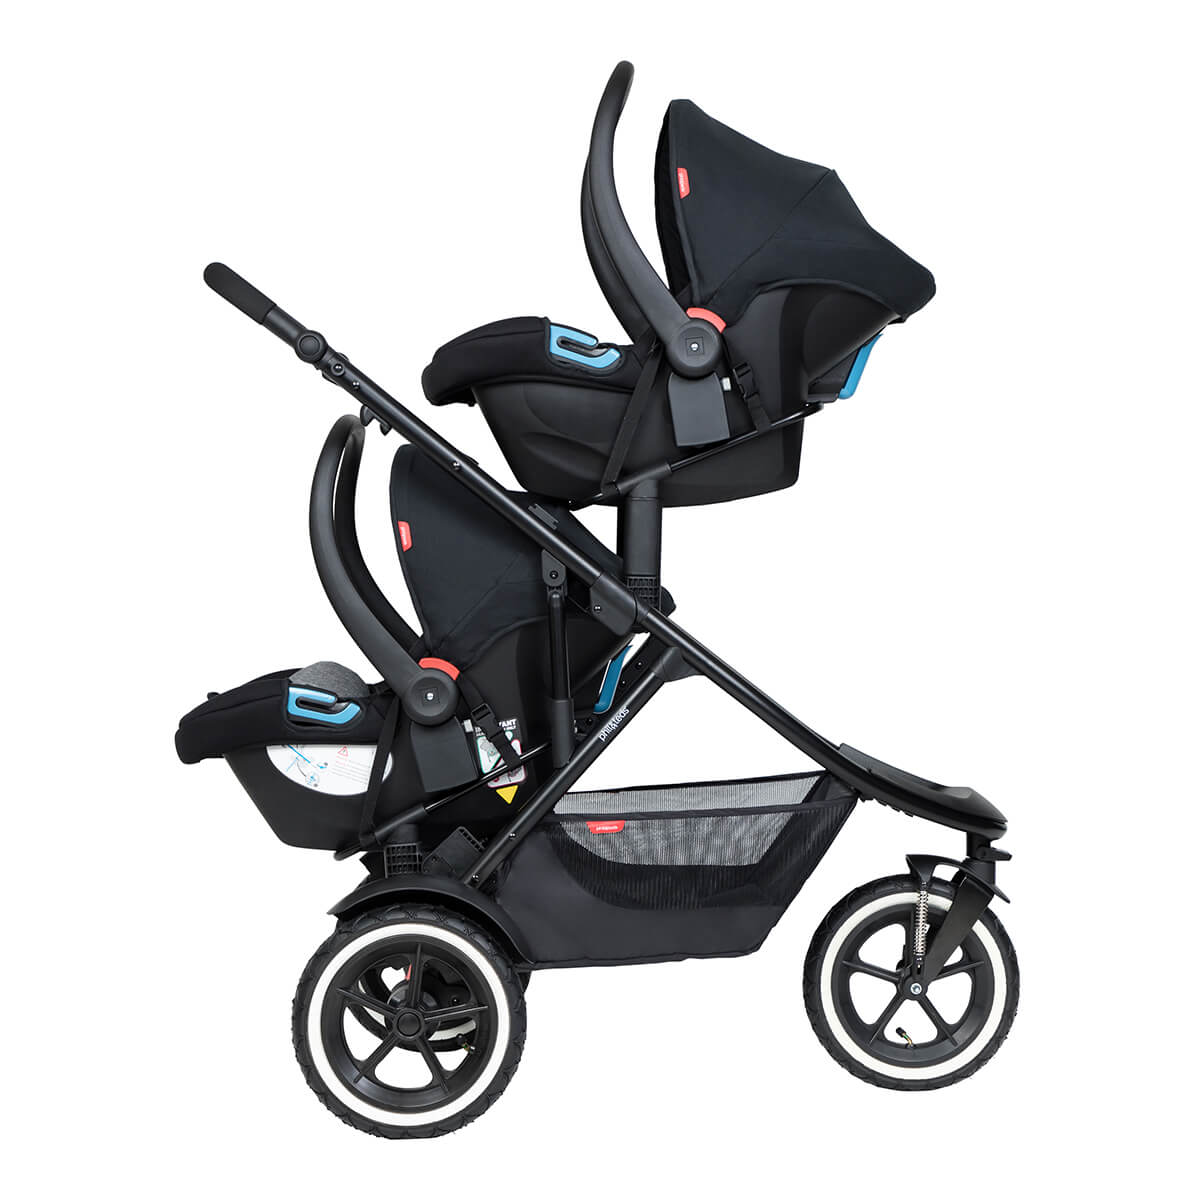 https://cdn.accentuate.io/4513463238752/19440099983544/philteds-sport-buggy-with-double-alpha-travel-system-v1626486627710.jpg?1200x1200